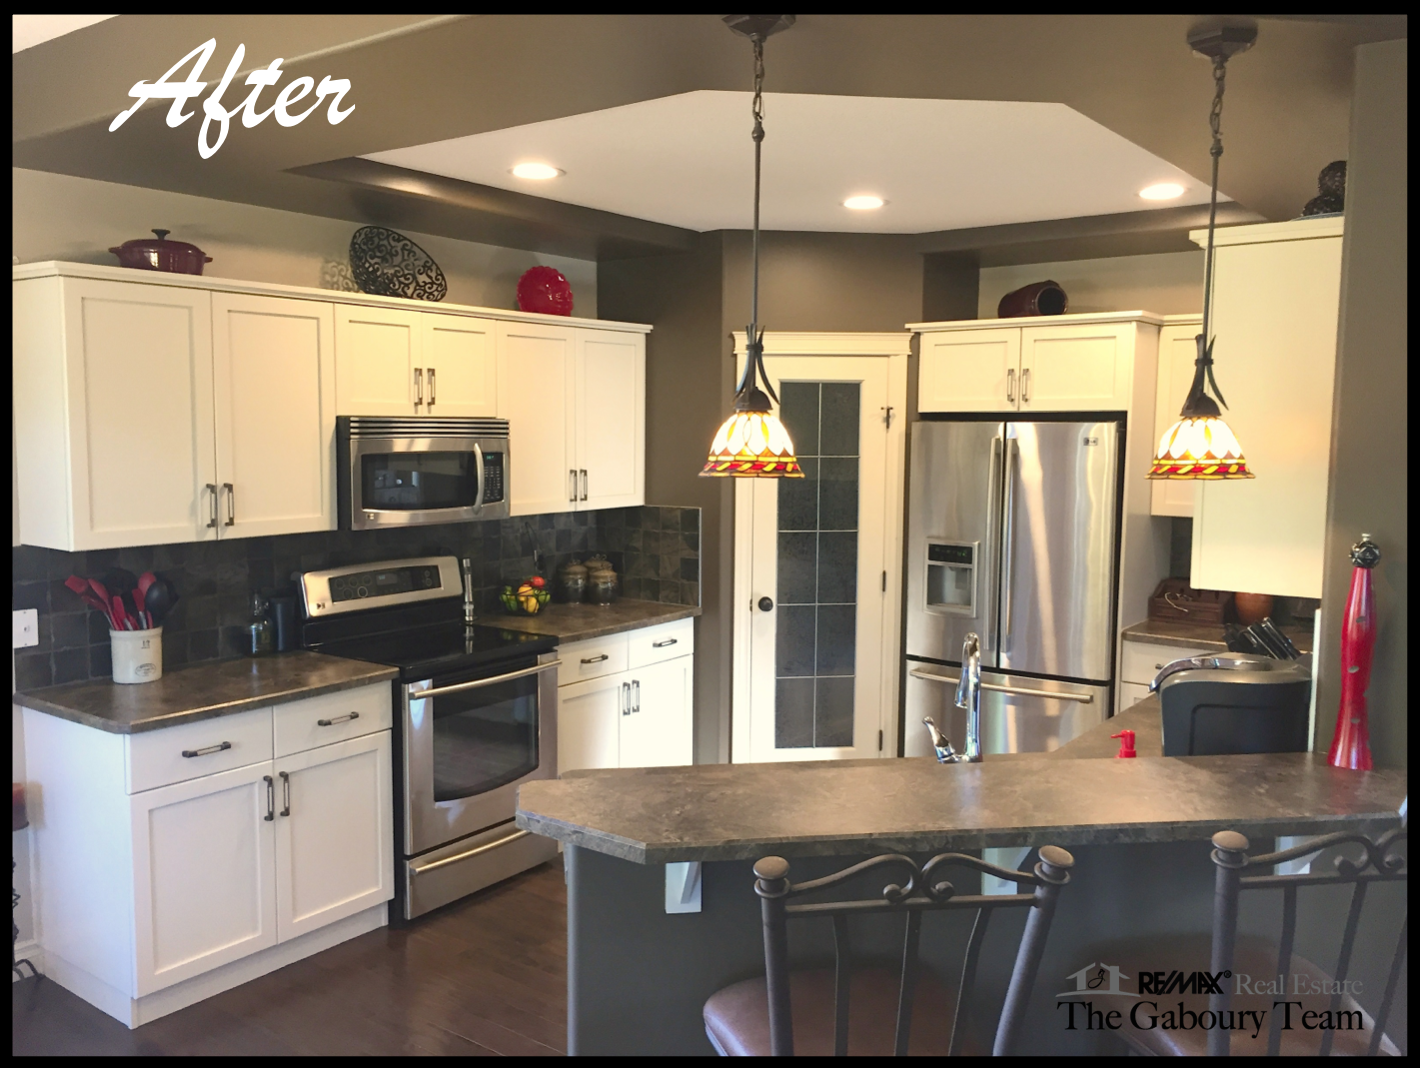 Updating Your Kitchen Cabinets - What and What NOT to do!